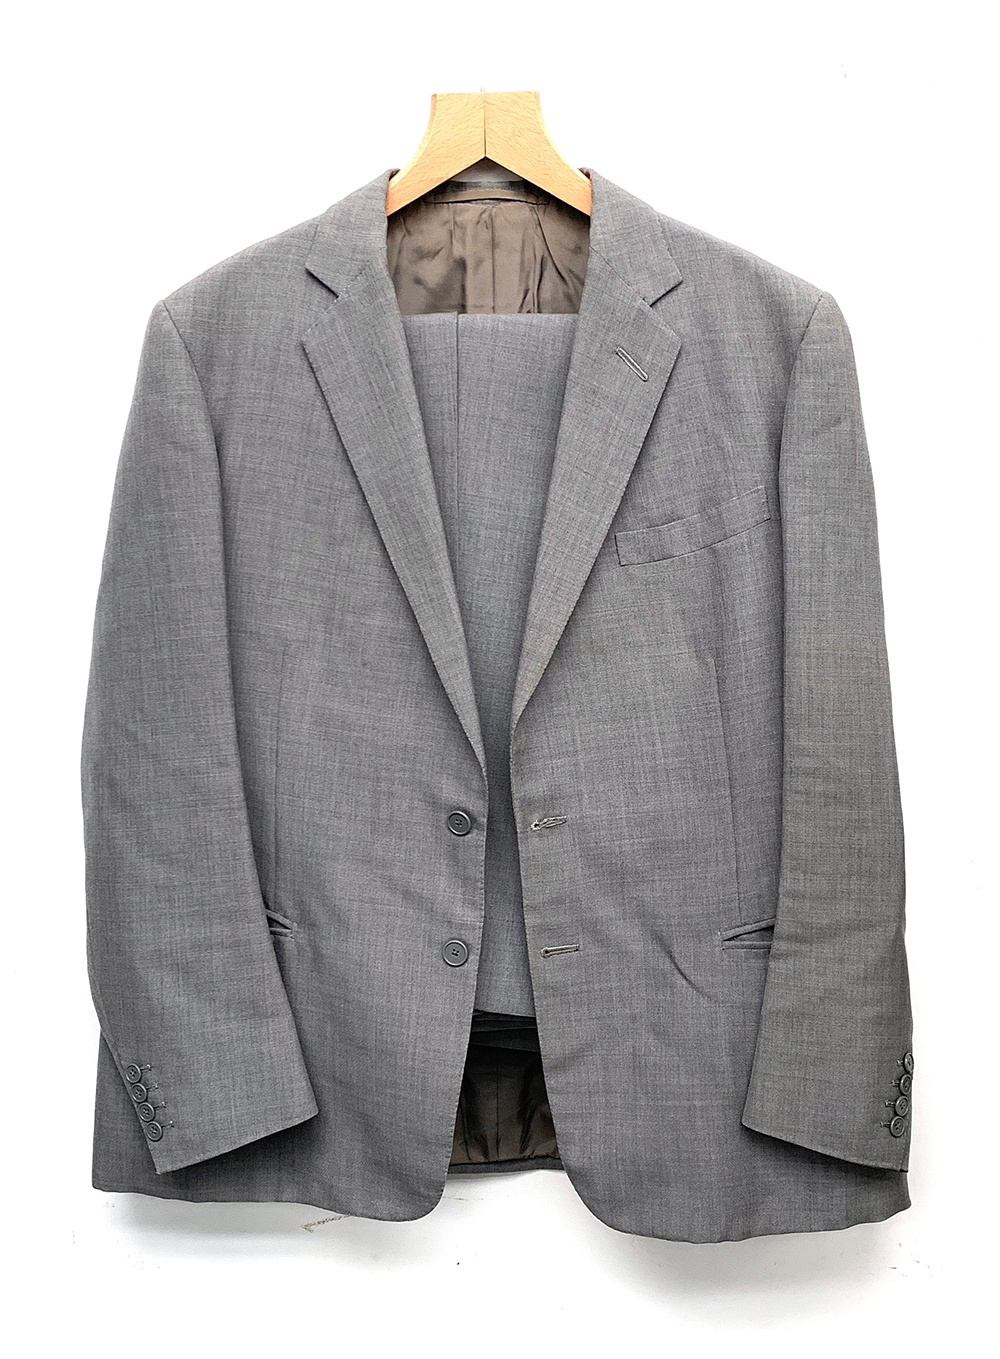 A gent's single breasted wool suit with two pairs of trousers, tailored by Sullivan, Woolley &